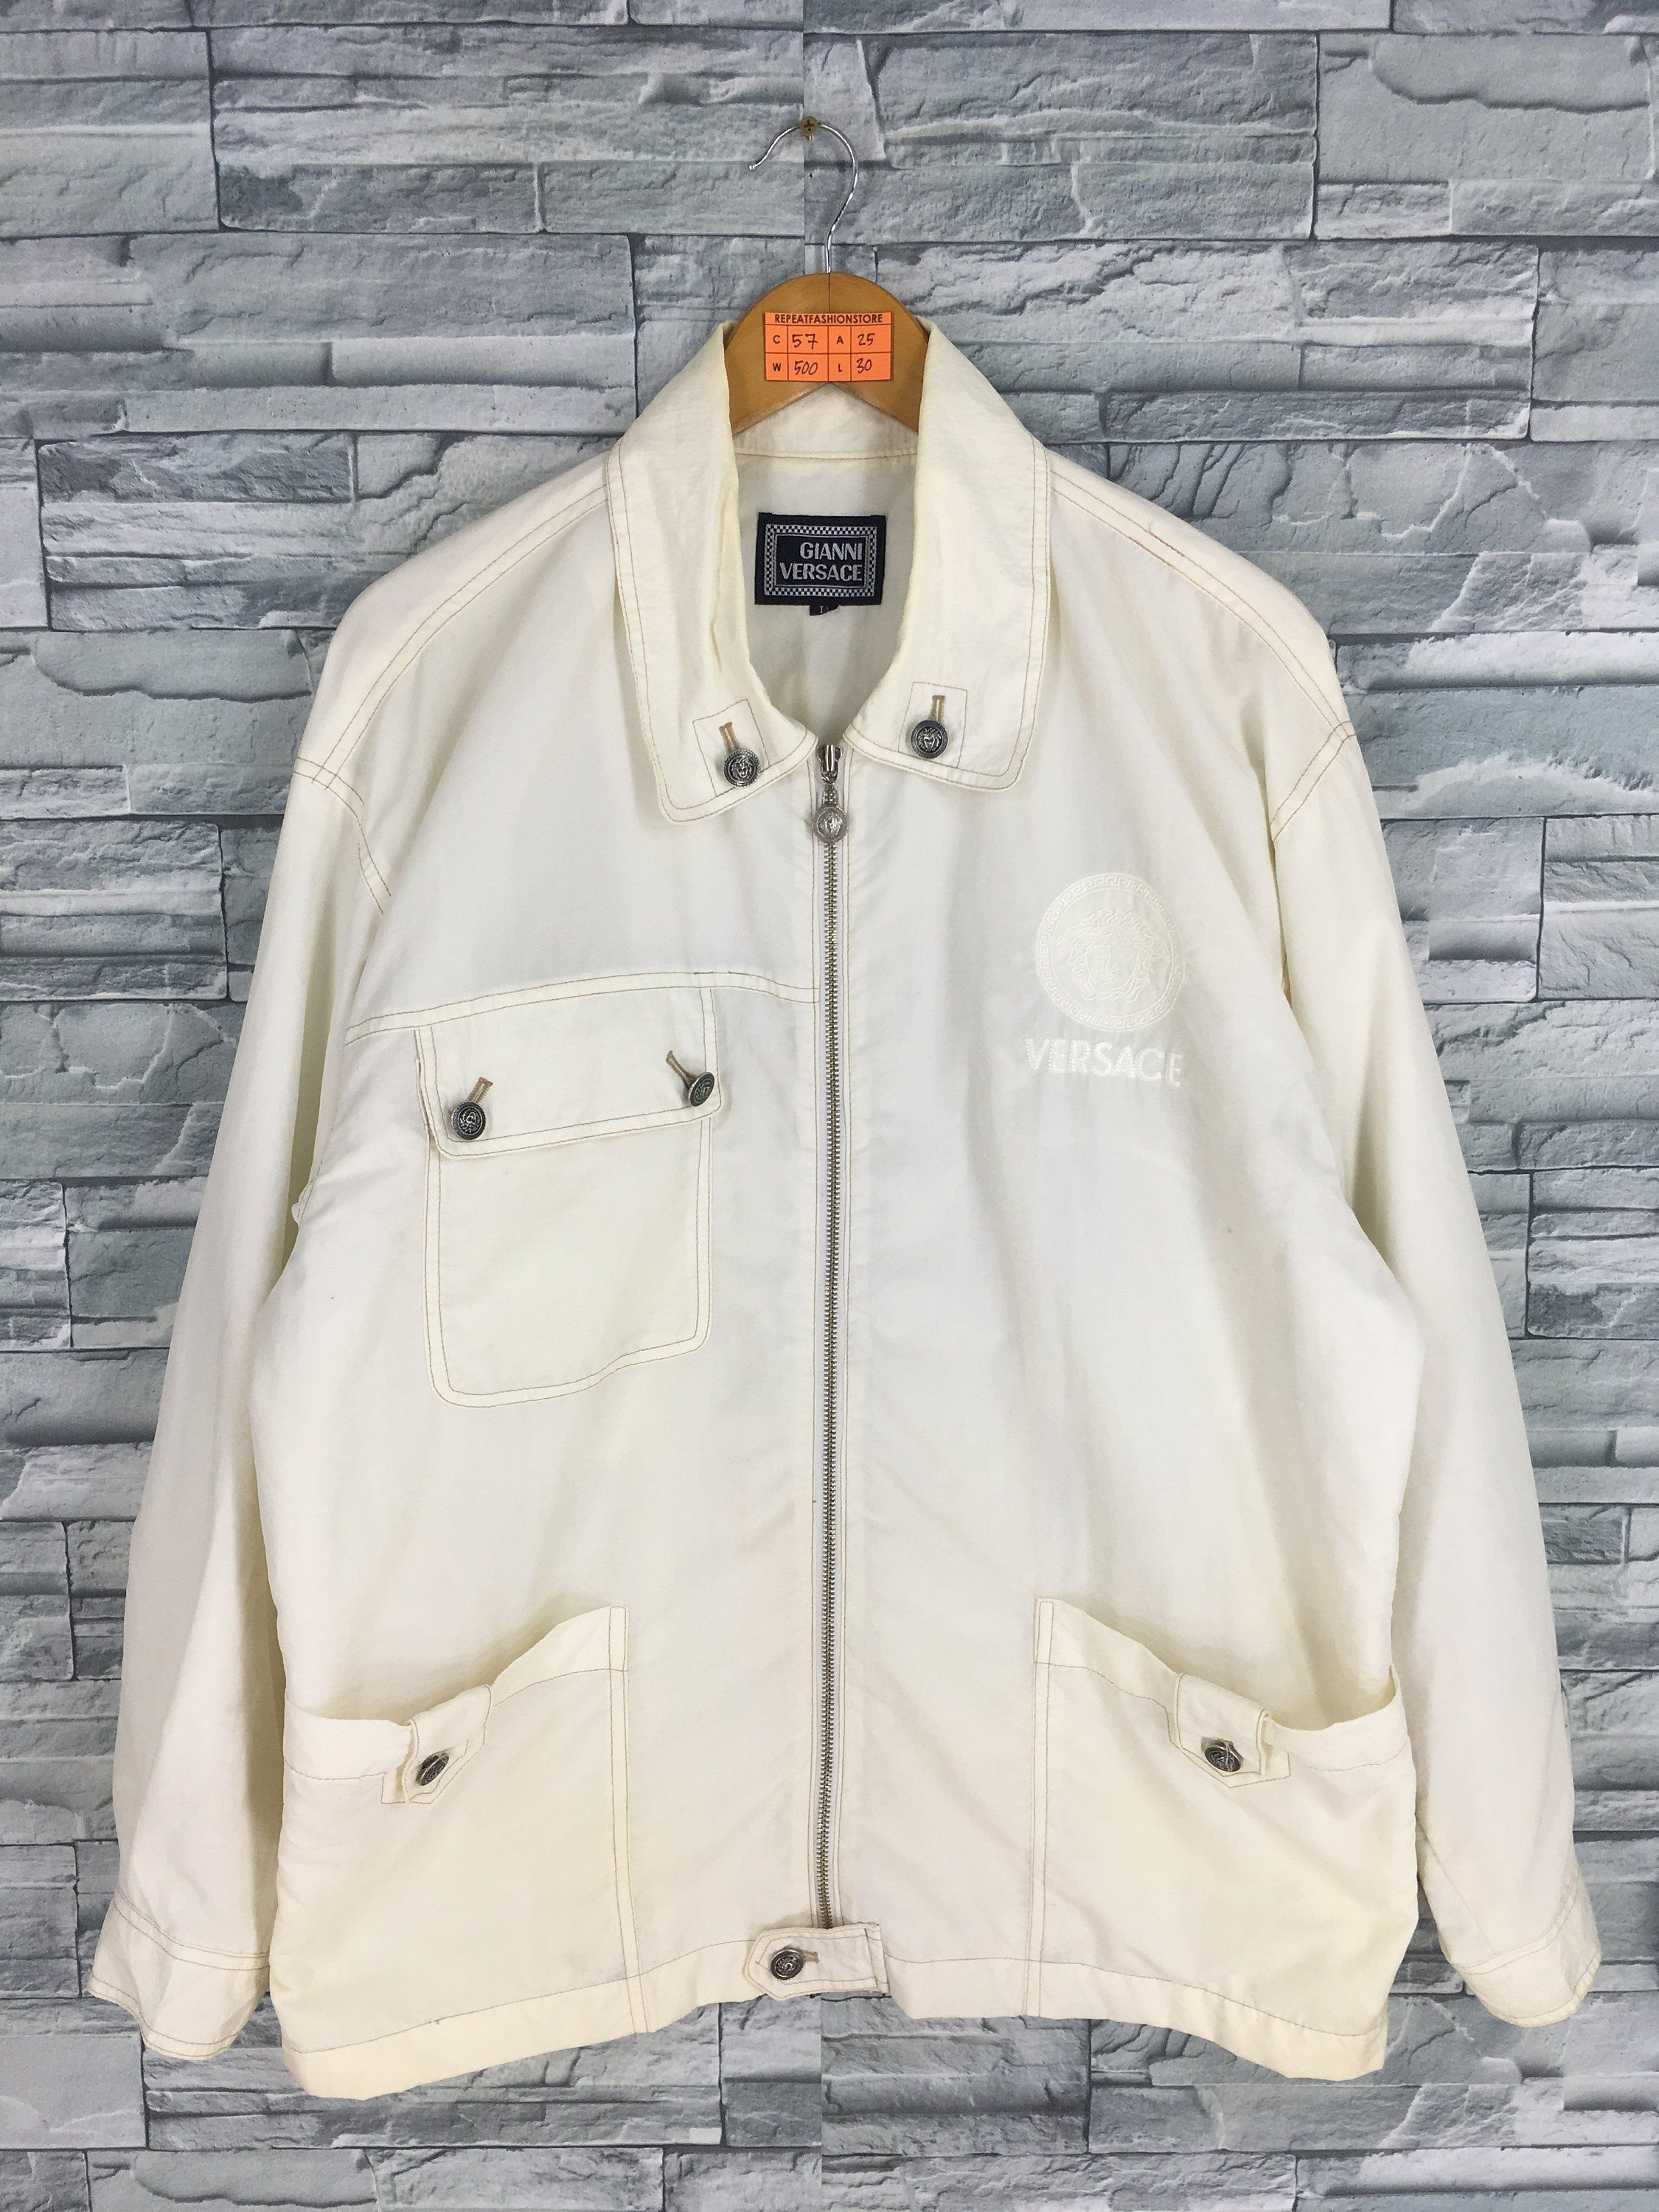 937242974bc8d GIANNI VERSACE Windbreaker Jacket Large Men Women Versace Jeans Couture  Medusa White Made In Italy Versace Light Zipper Jacket Size L by  REPEATFASHIONSTORE ...